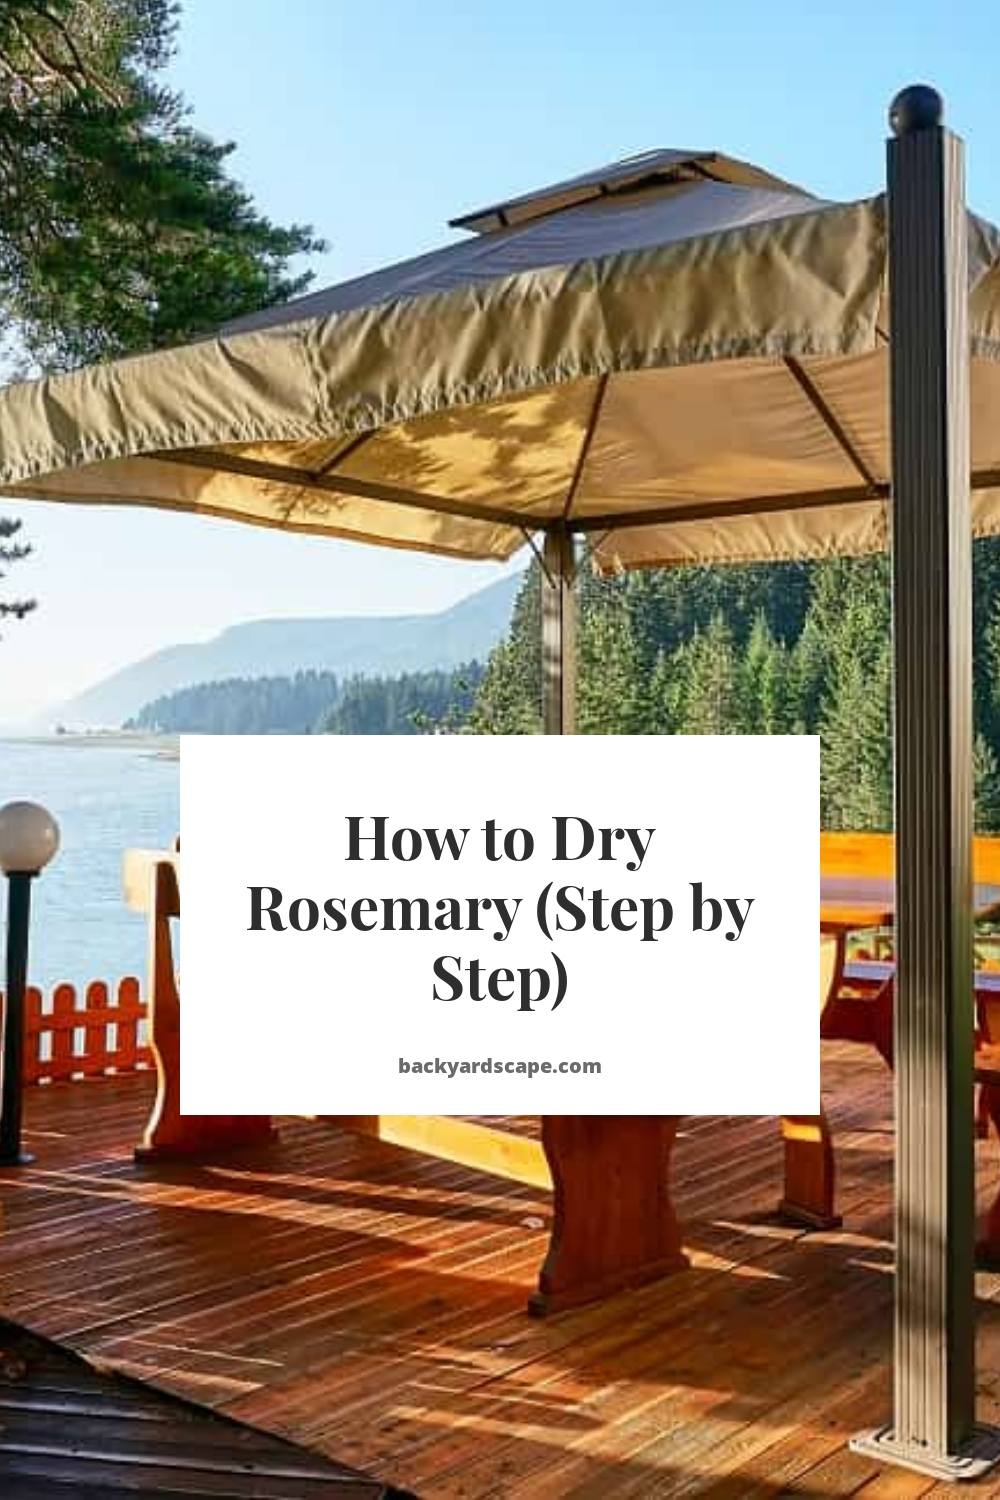 How to Dry Rosemary (Step by Step)